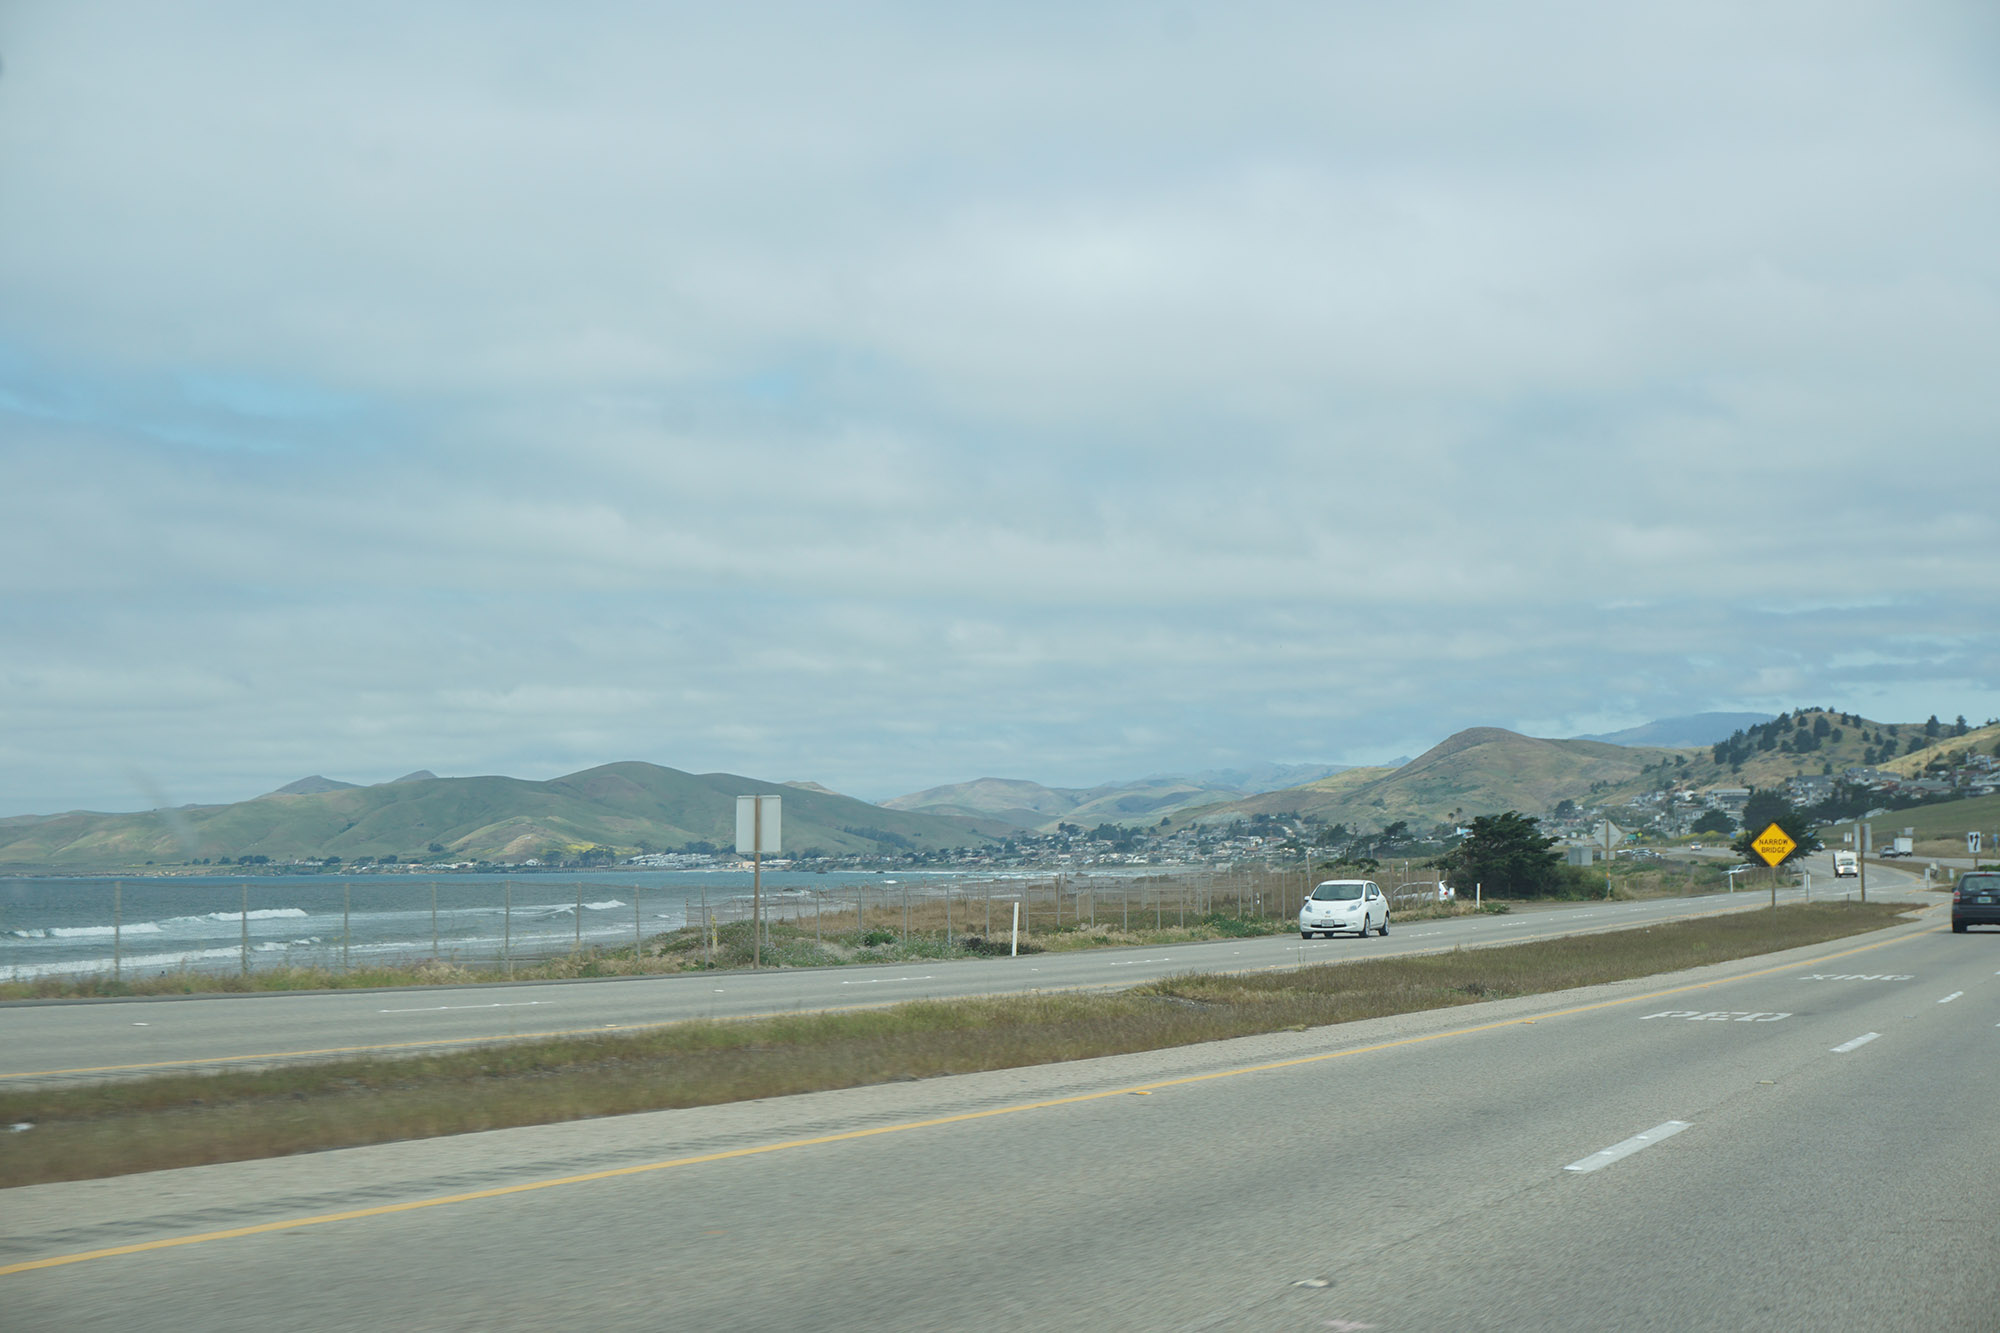 Hitting the open road near Cayucos